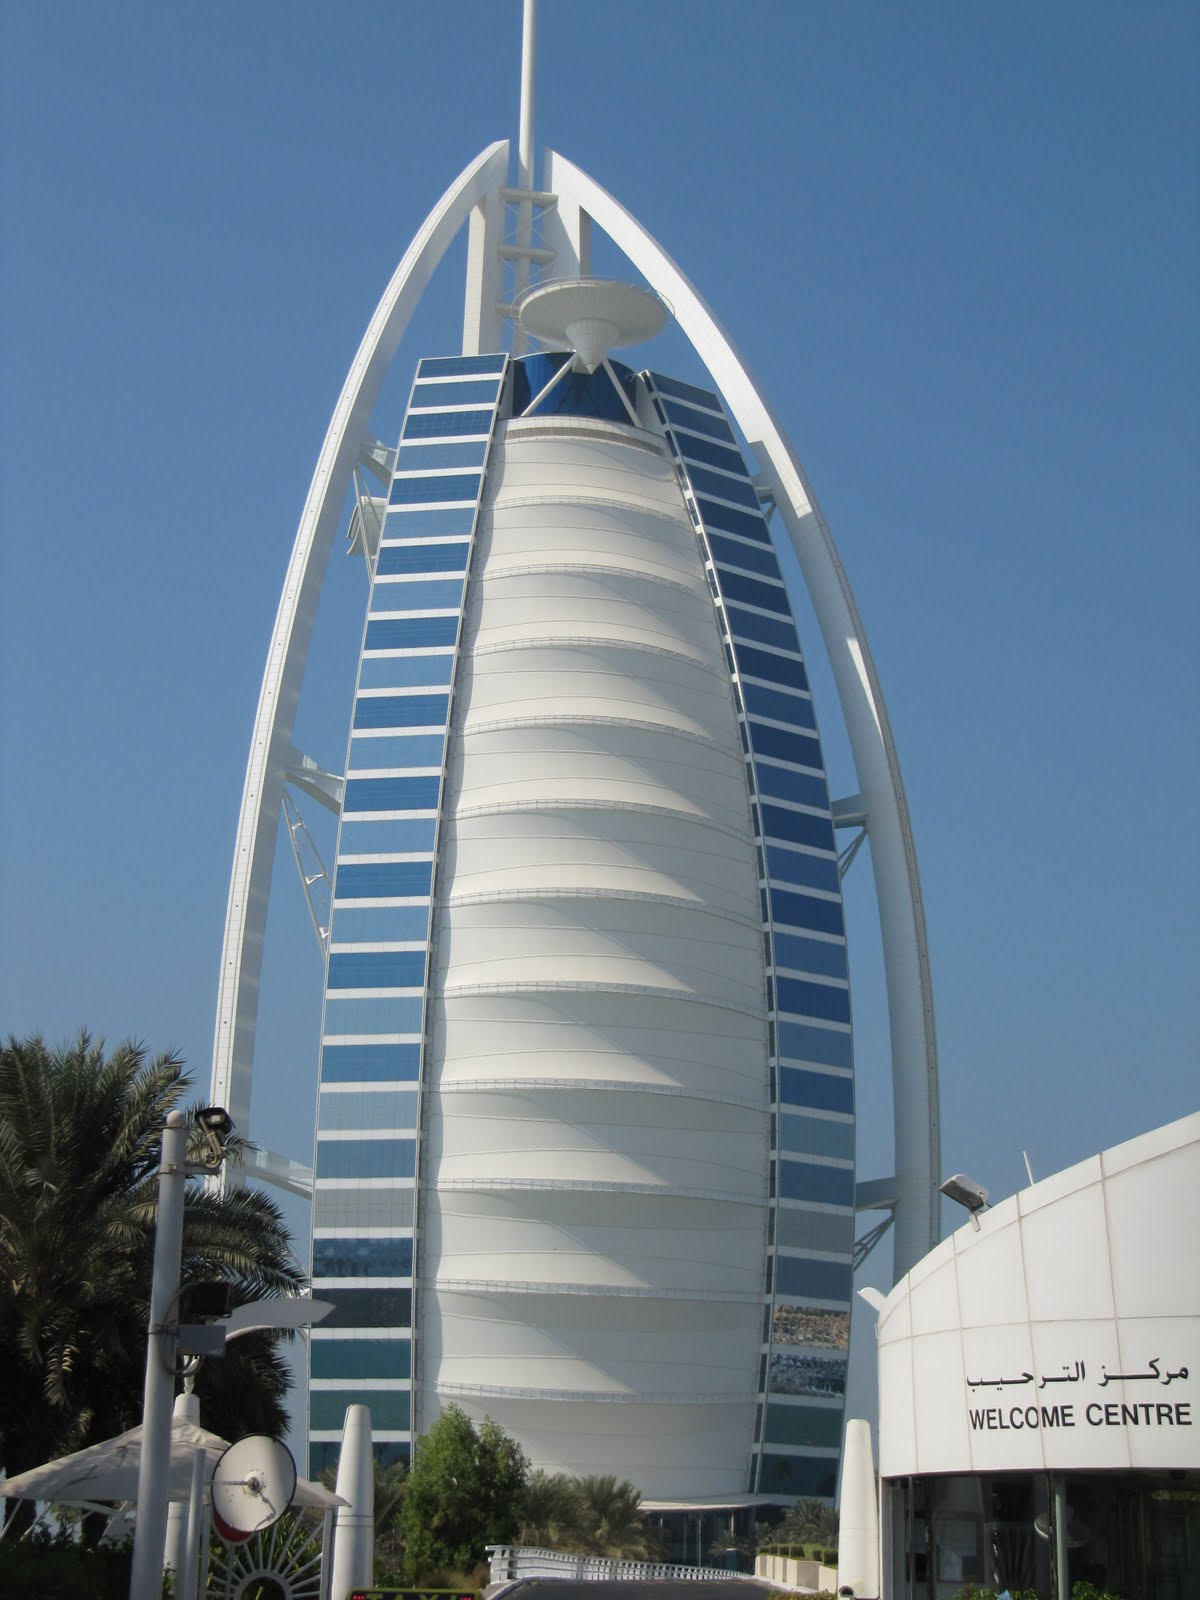 Bearnie bears travels dubai the famous 7 star hotel bur for 7 star hotel dubai